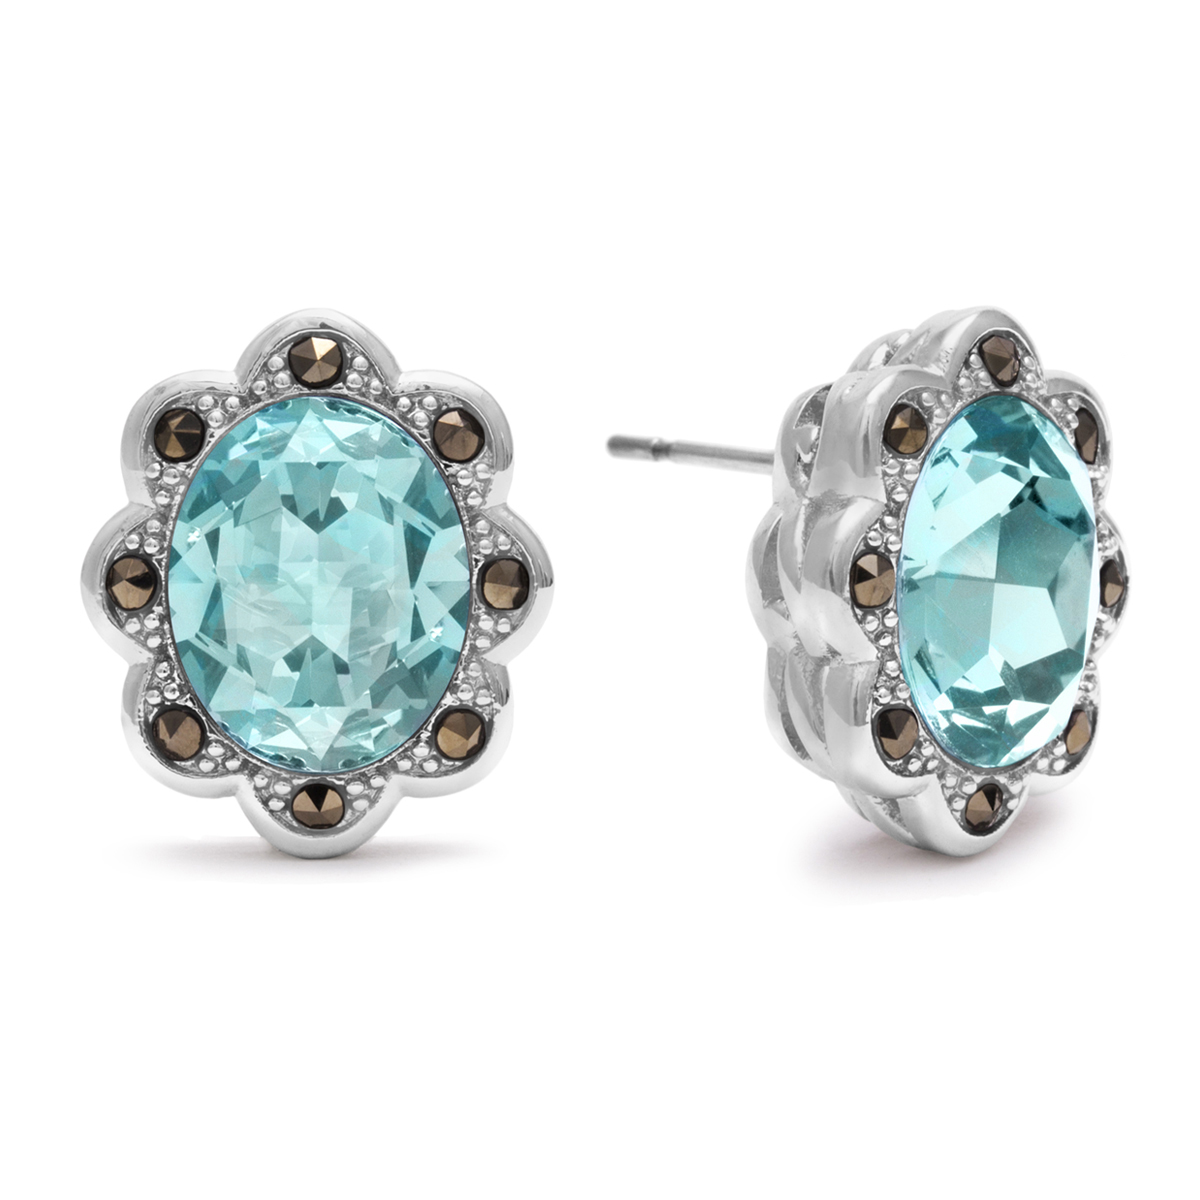 4ct Oval Shape Crystal Aquamarine and Marcasite Earrings